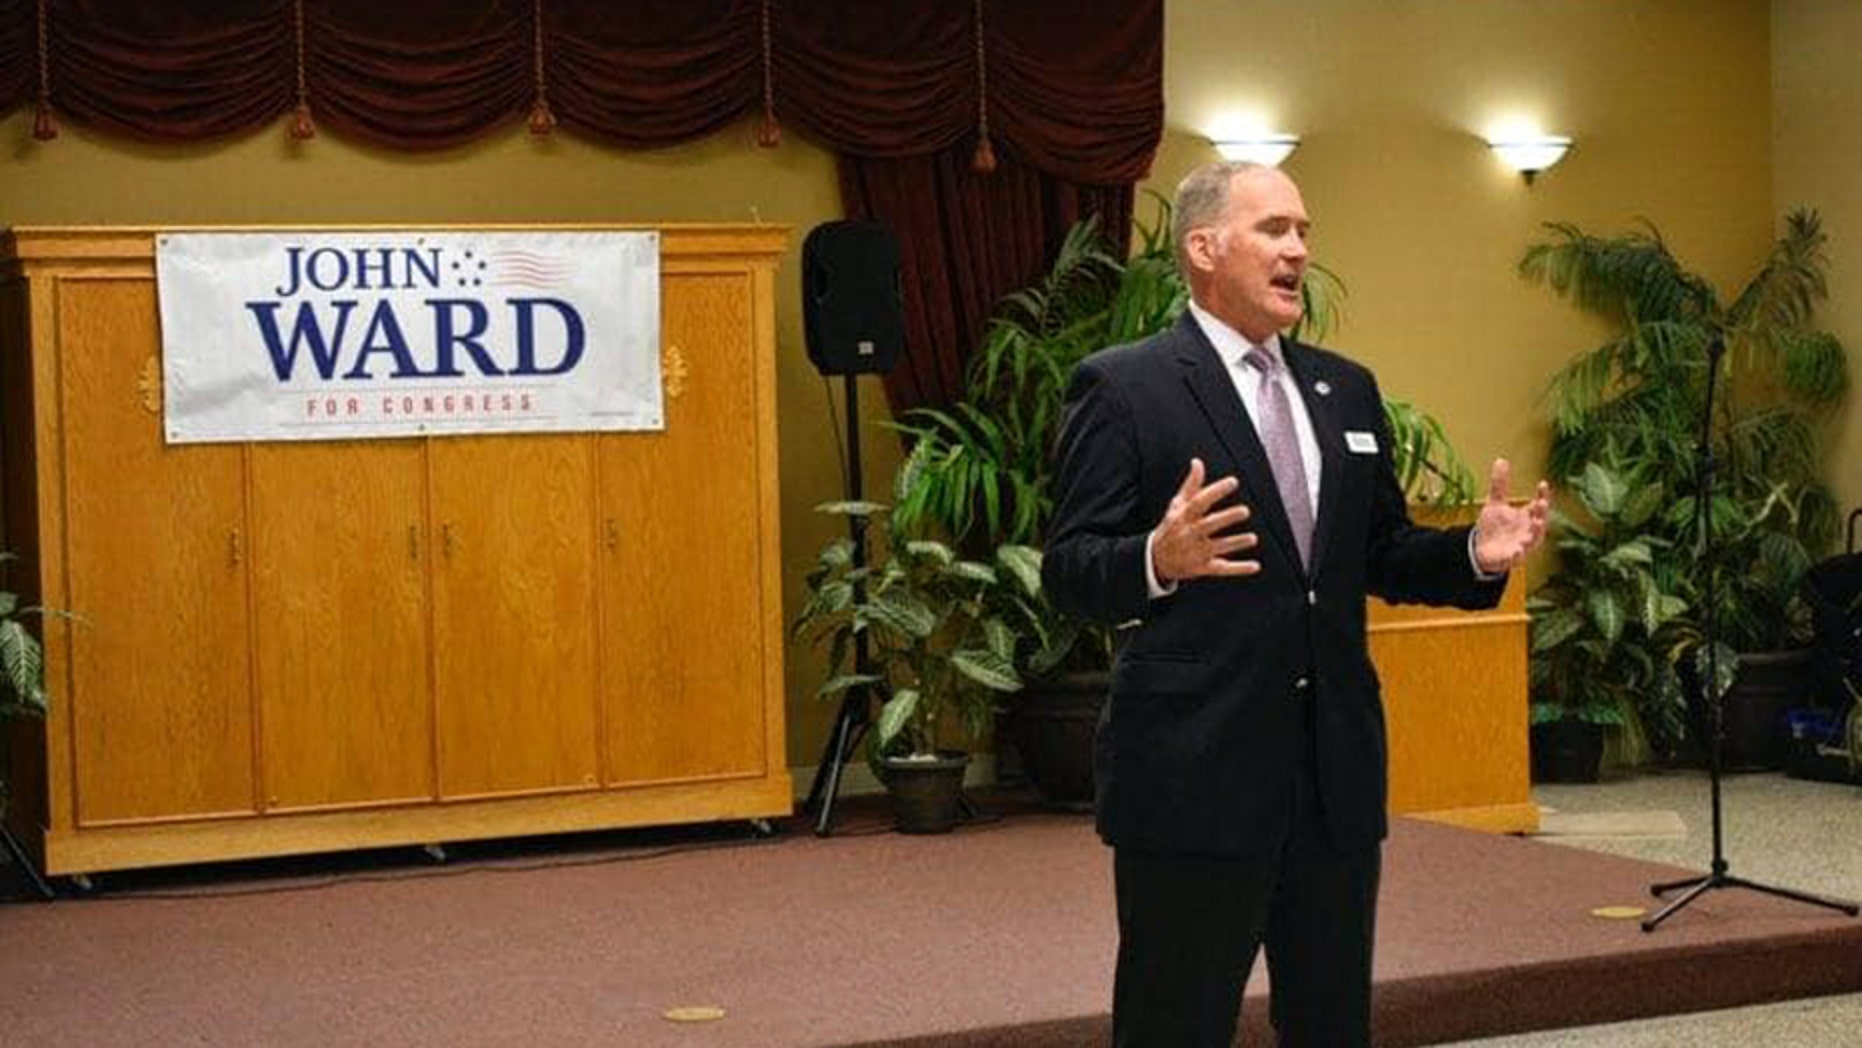 Congressional candidate John Ward is facing intense criticism, including from those in his party, after his opponent published a video of comments he made about displaced Puerto Ricans in the state.